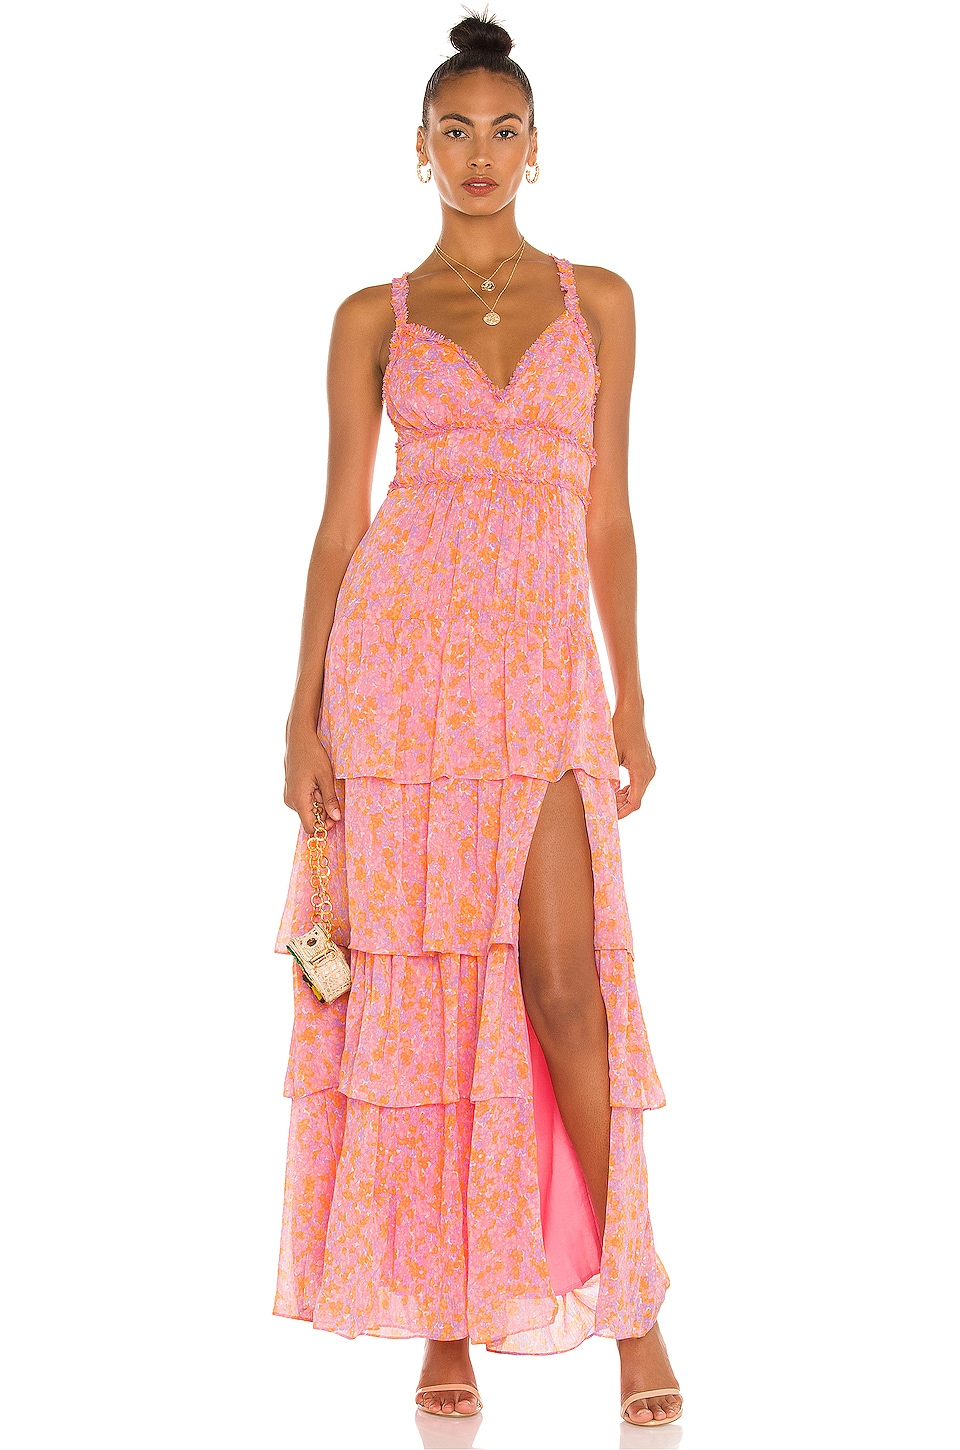 LIKELY Athena Maxi Dress in Pink Multi